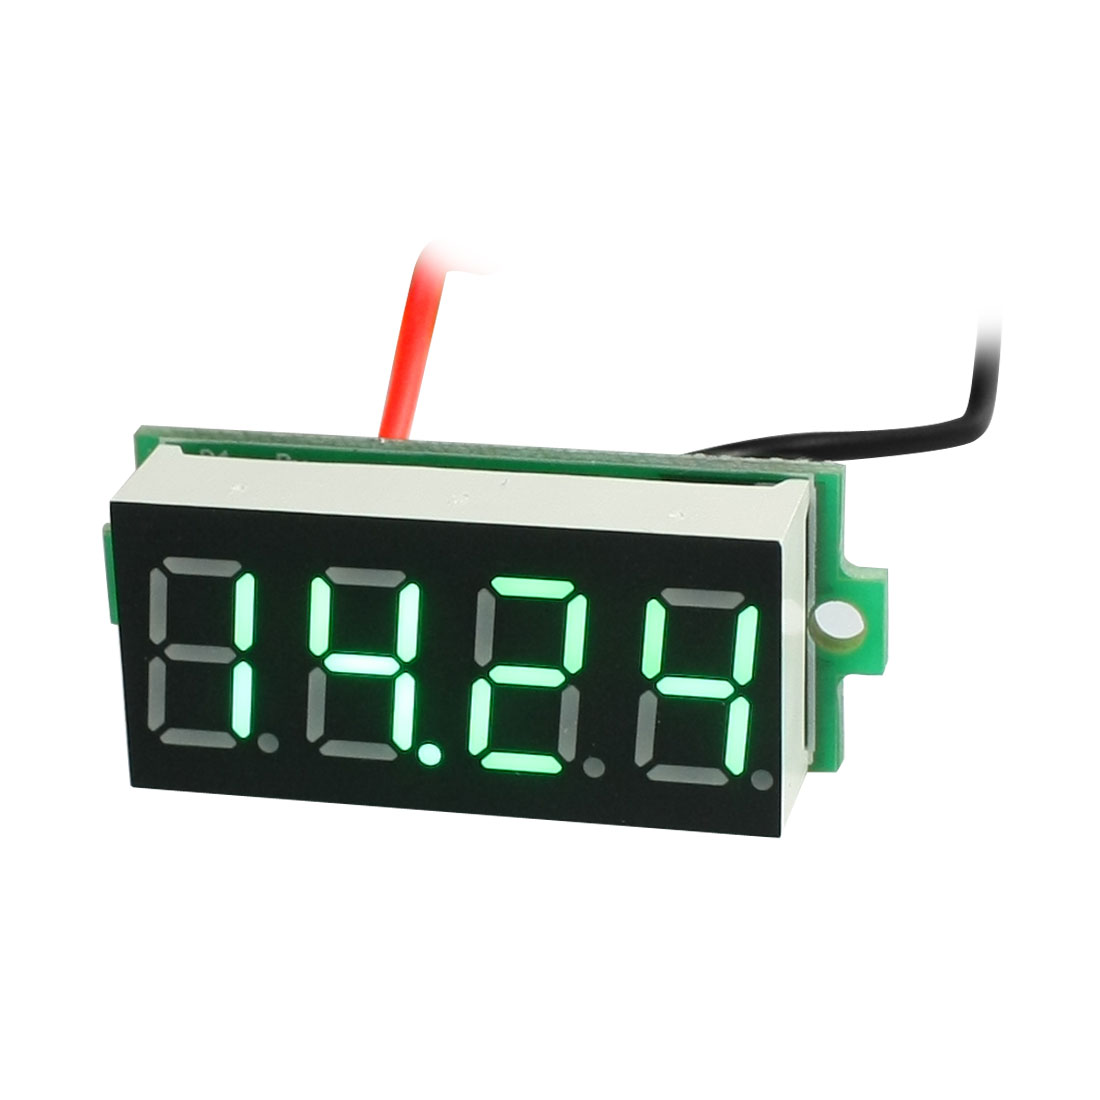 0-36-Green-LED-Display-Panel-Meter-2Wire-Digital-Voltmeter-DC3-5-30V